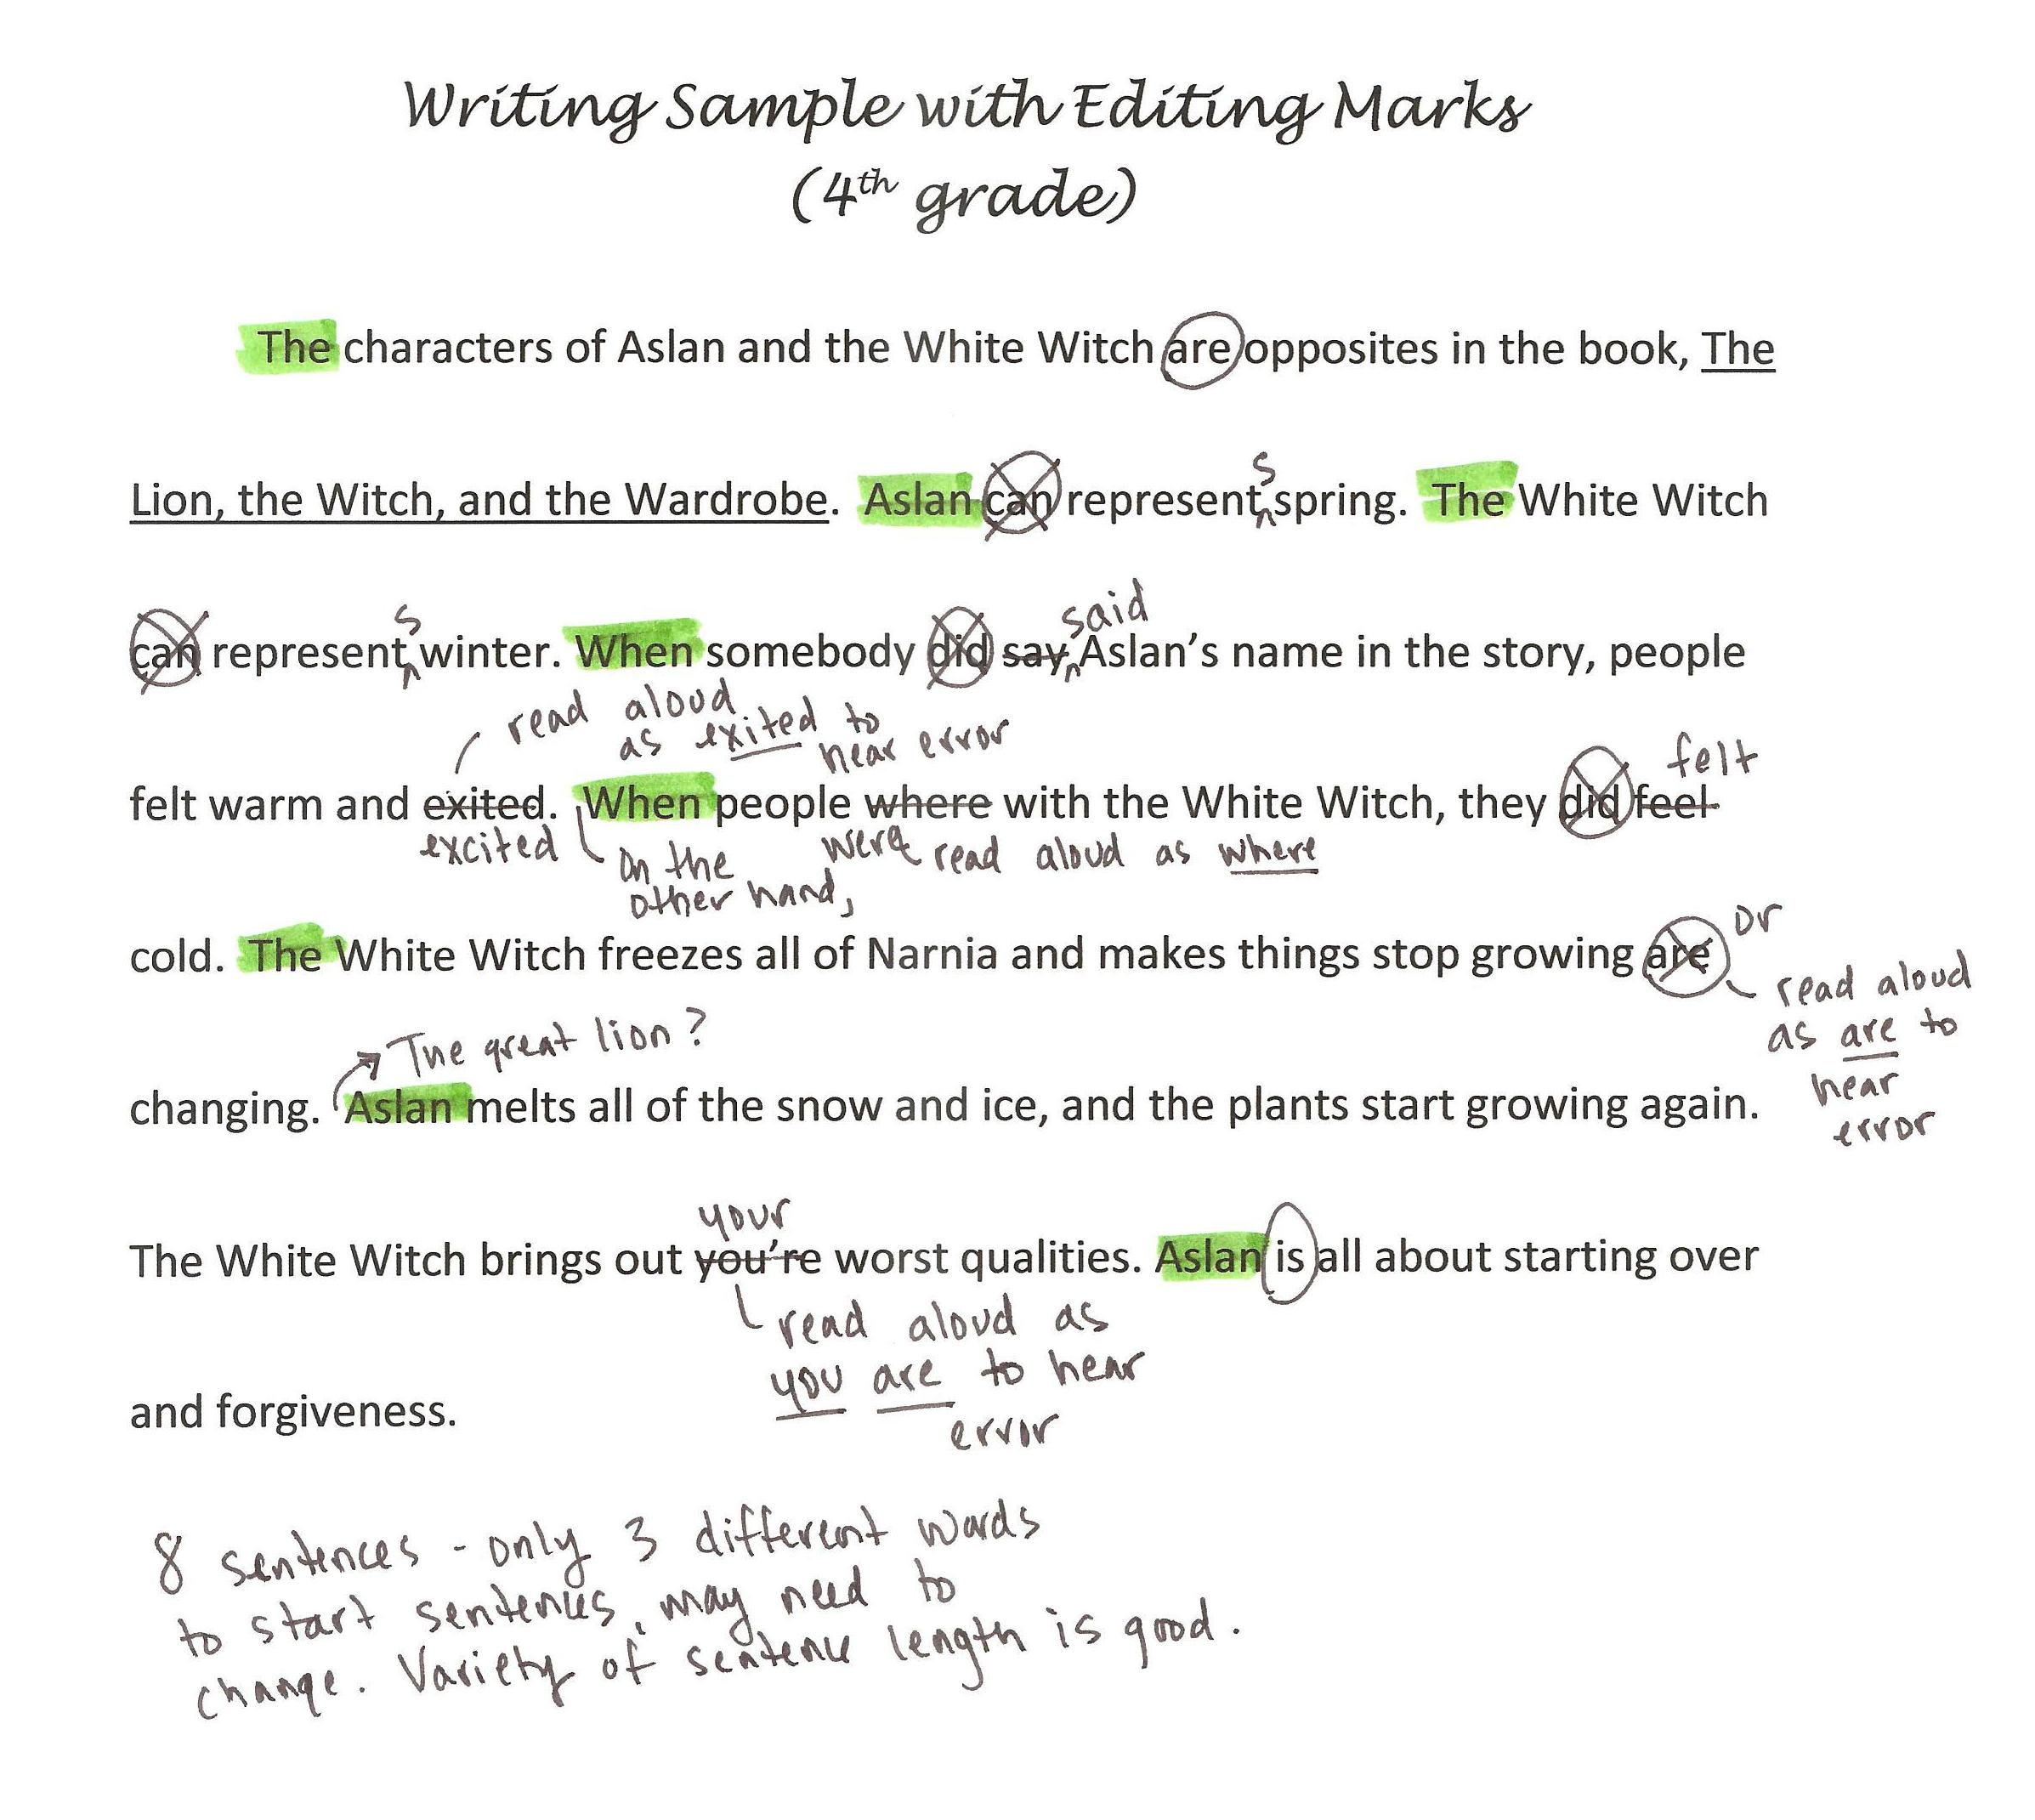 003 Essay Editor Writing Sample With Editing Marks1 Marvelous Service Generator Free Full